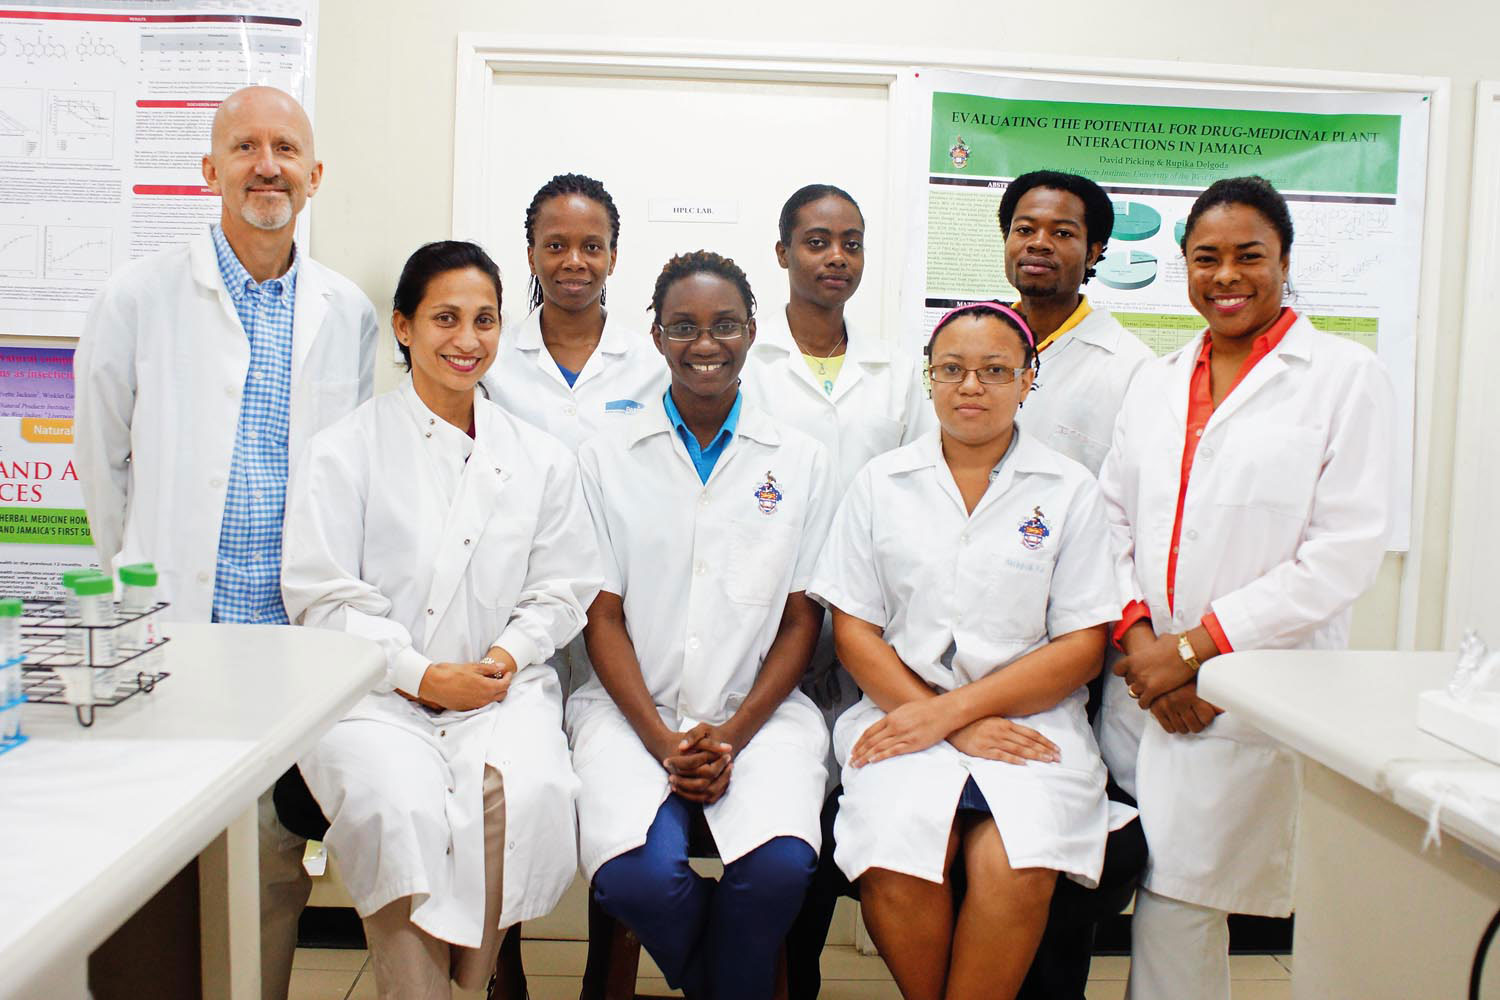 Members of the team at the Natural Products Institute at UWI Mona. Back row, from left: David Picking, Joette McKenzie, Kimberley Foster, Issac Morrison, Sheena Francis. Front row, from left: Rupika Delgoda, Je Ann Murray, Shaneice Wauchope. Photo courtesy National Products Institute